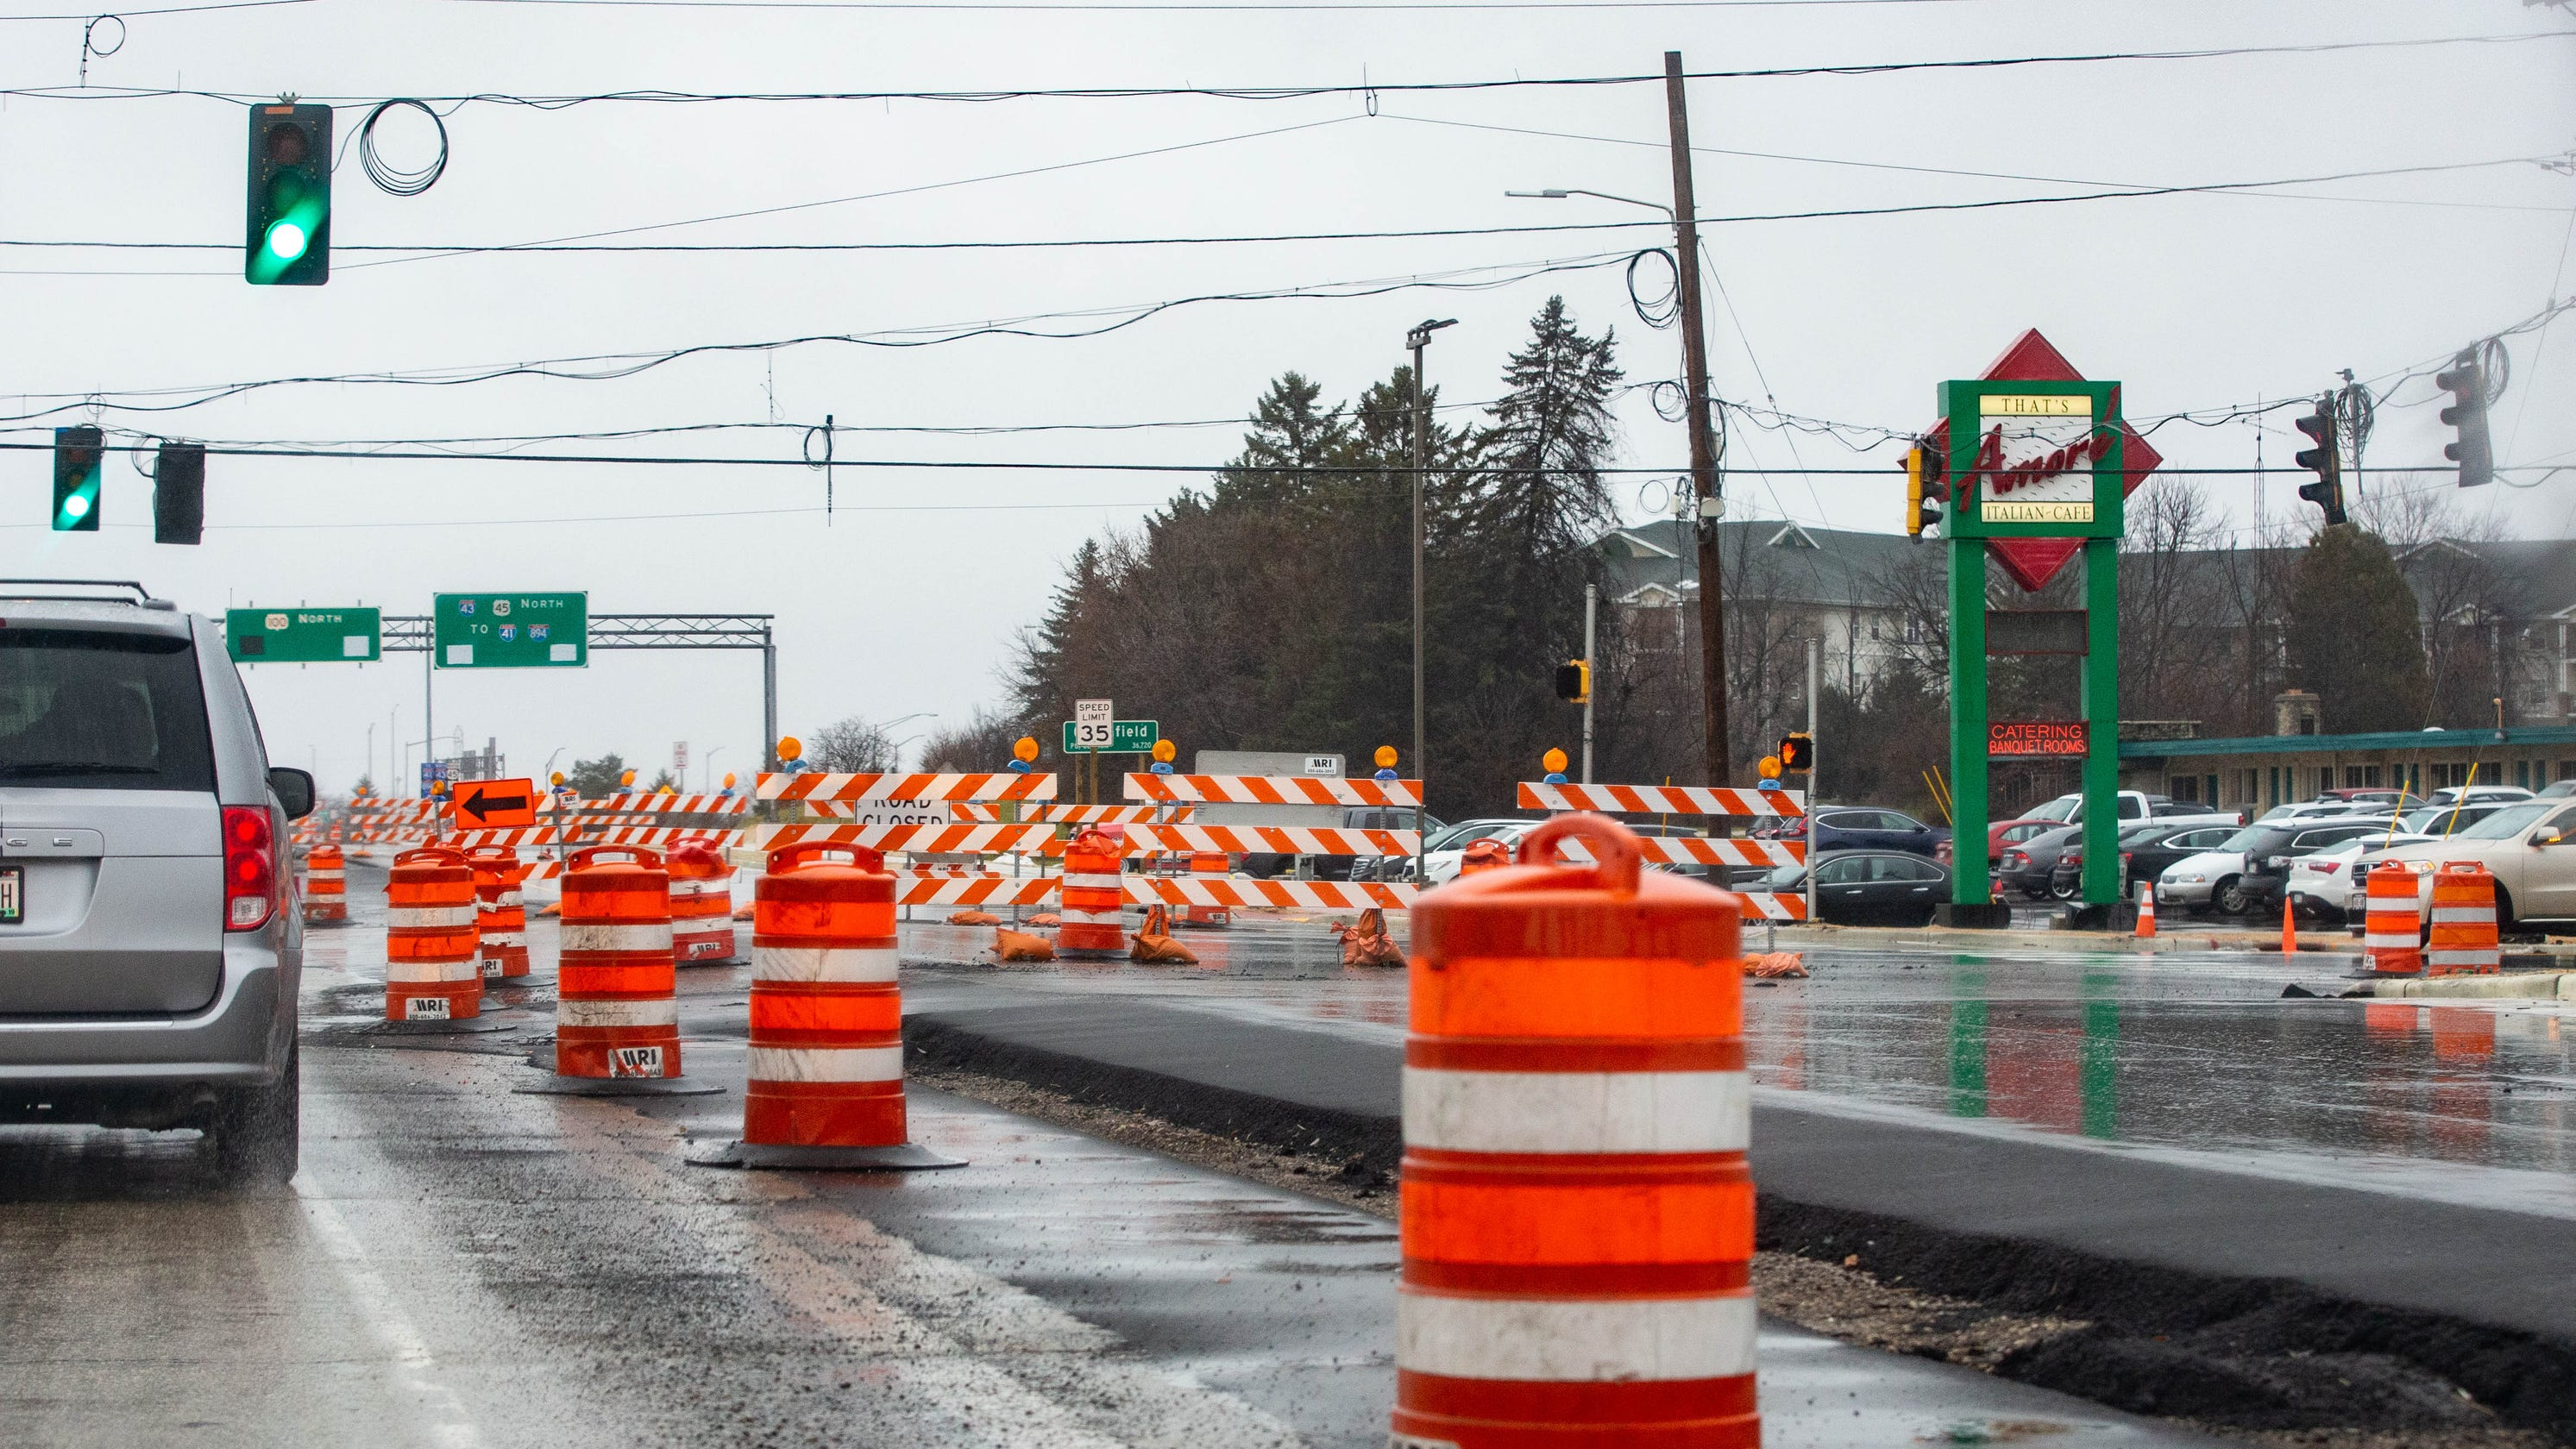 Milwaukee traffic: Current construction projects, road